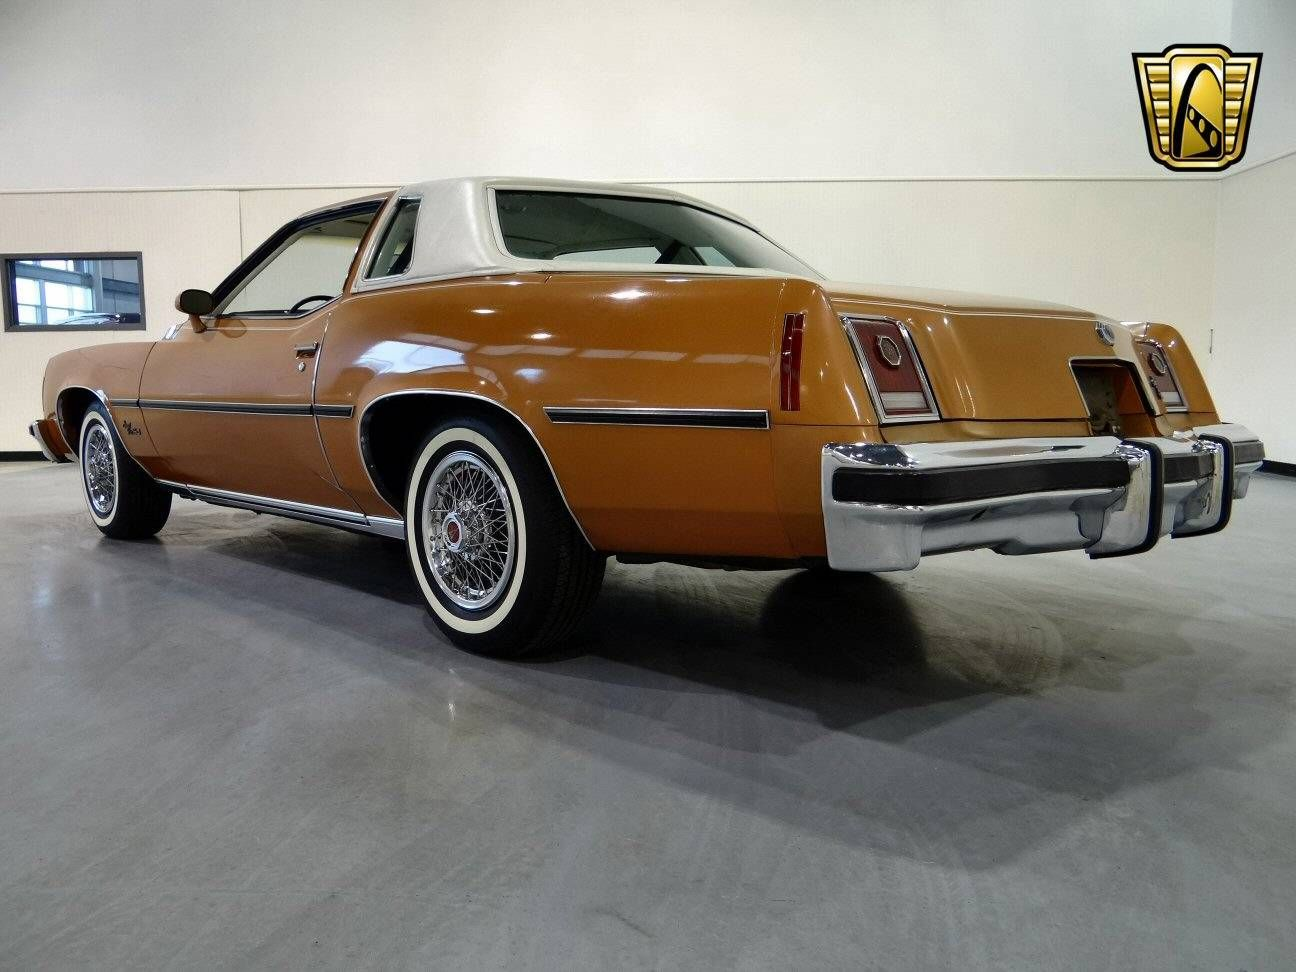 Displaying 1 15 of 49 total results for classic pontiac grand prix vehicles for sale